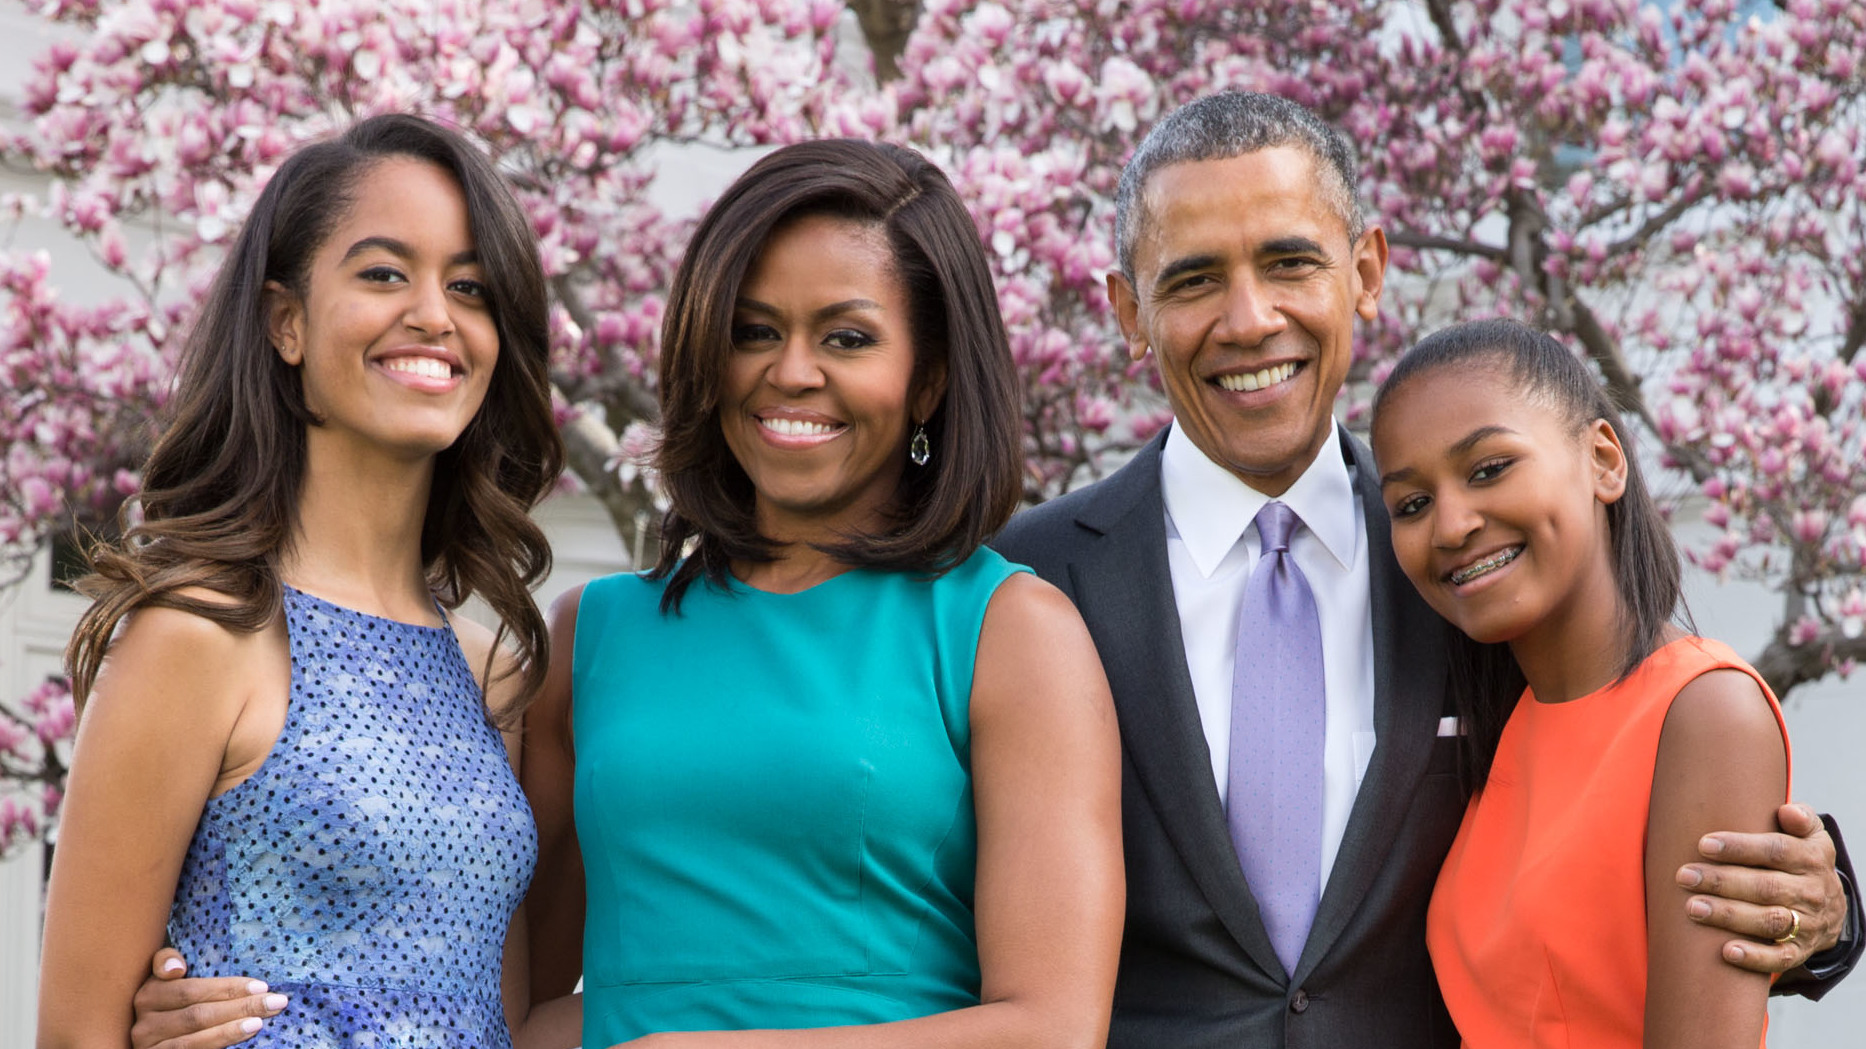 """""""barack-obama-says-his-daughters-are-afraid-of-michelle-but-they-always-mock-him-im-the-brunt-of-every-joke"""""""